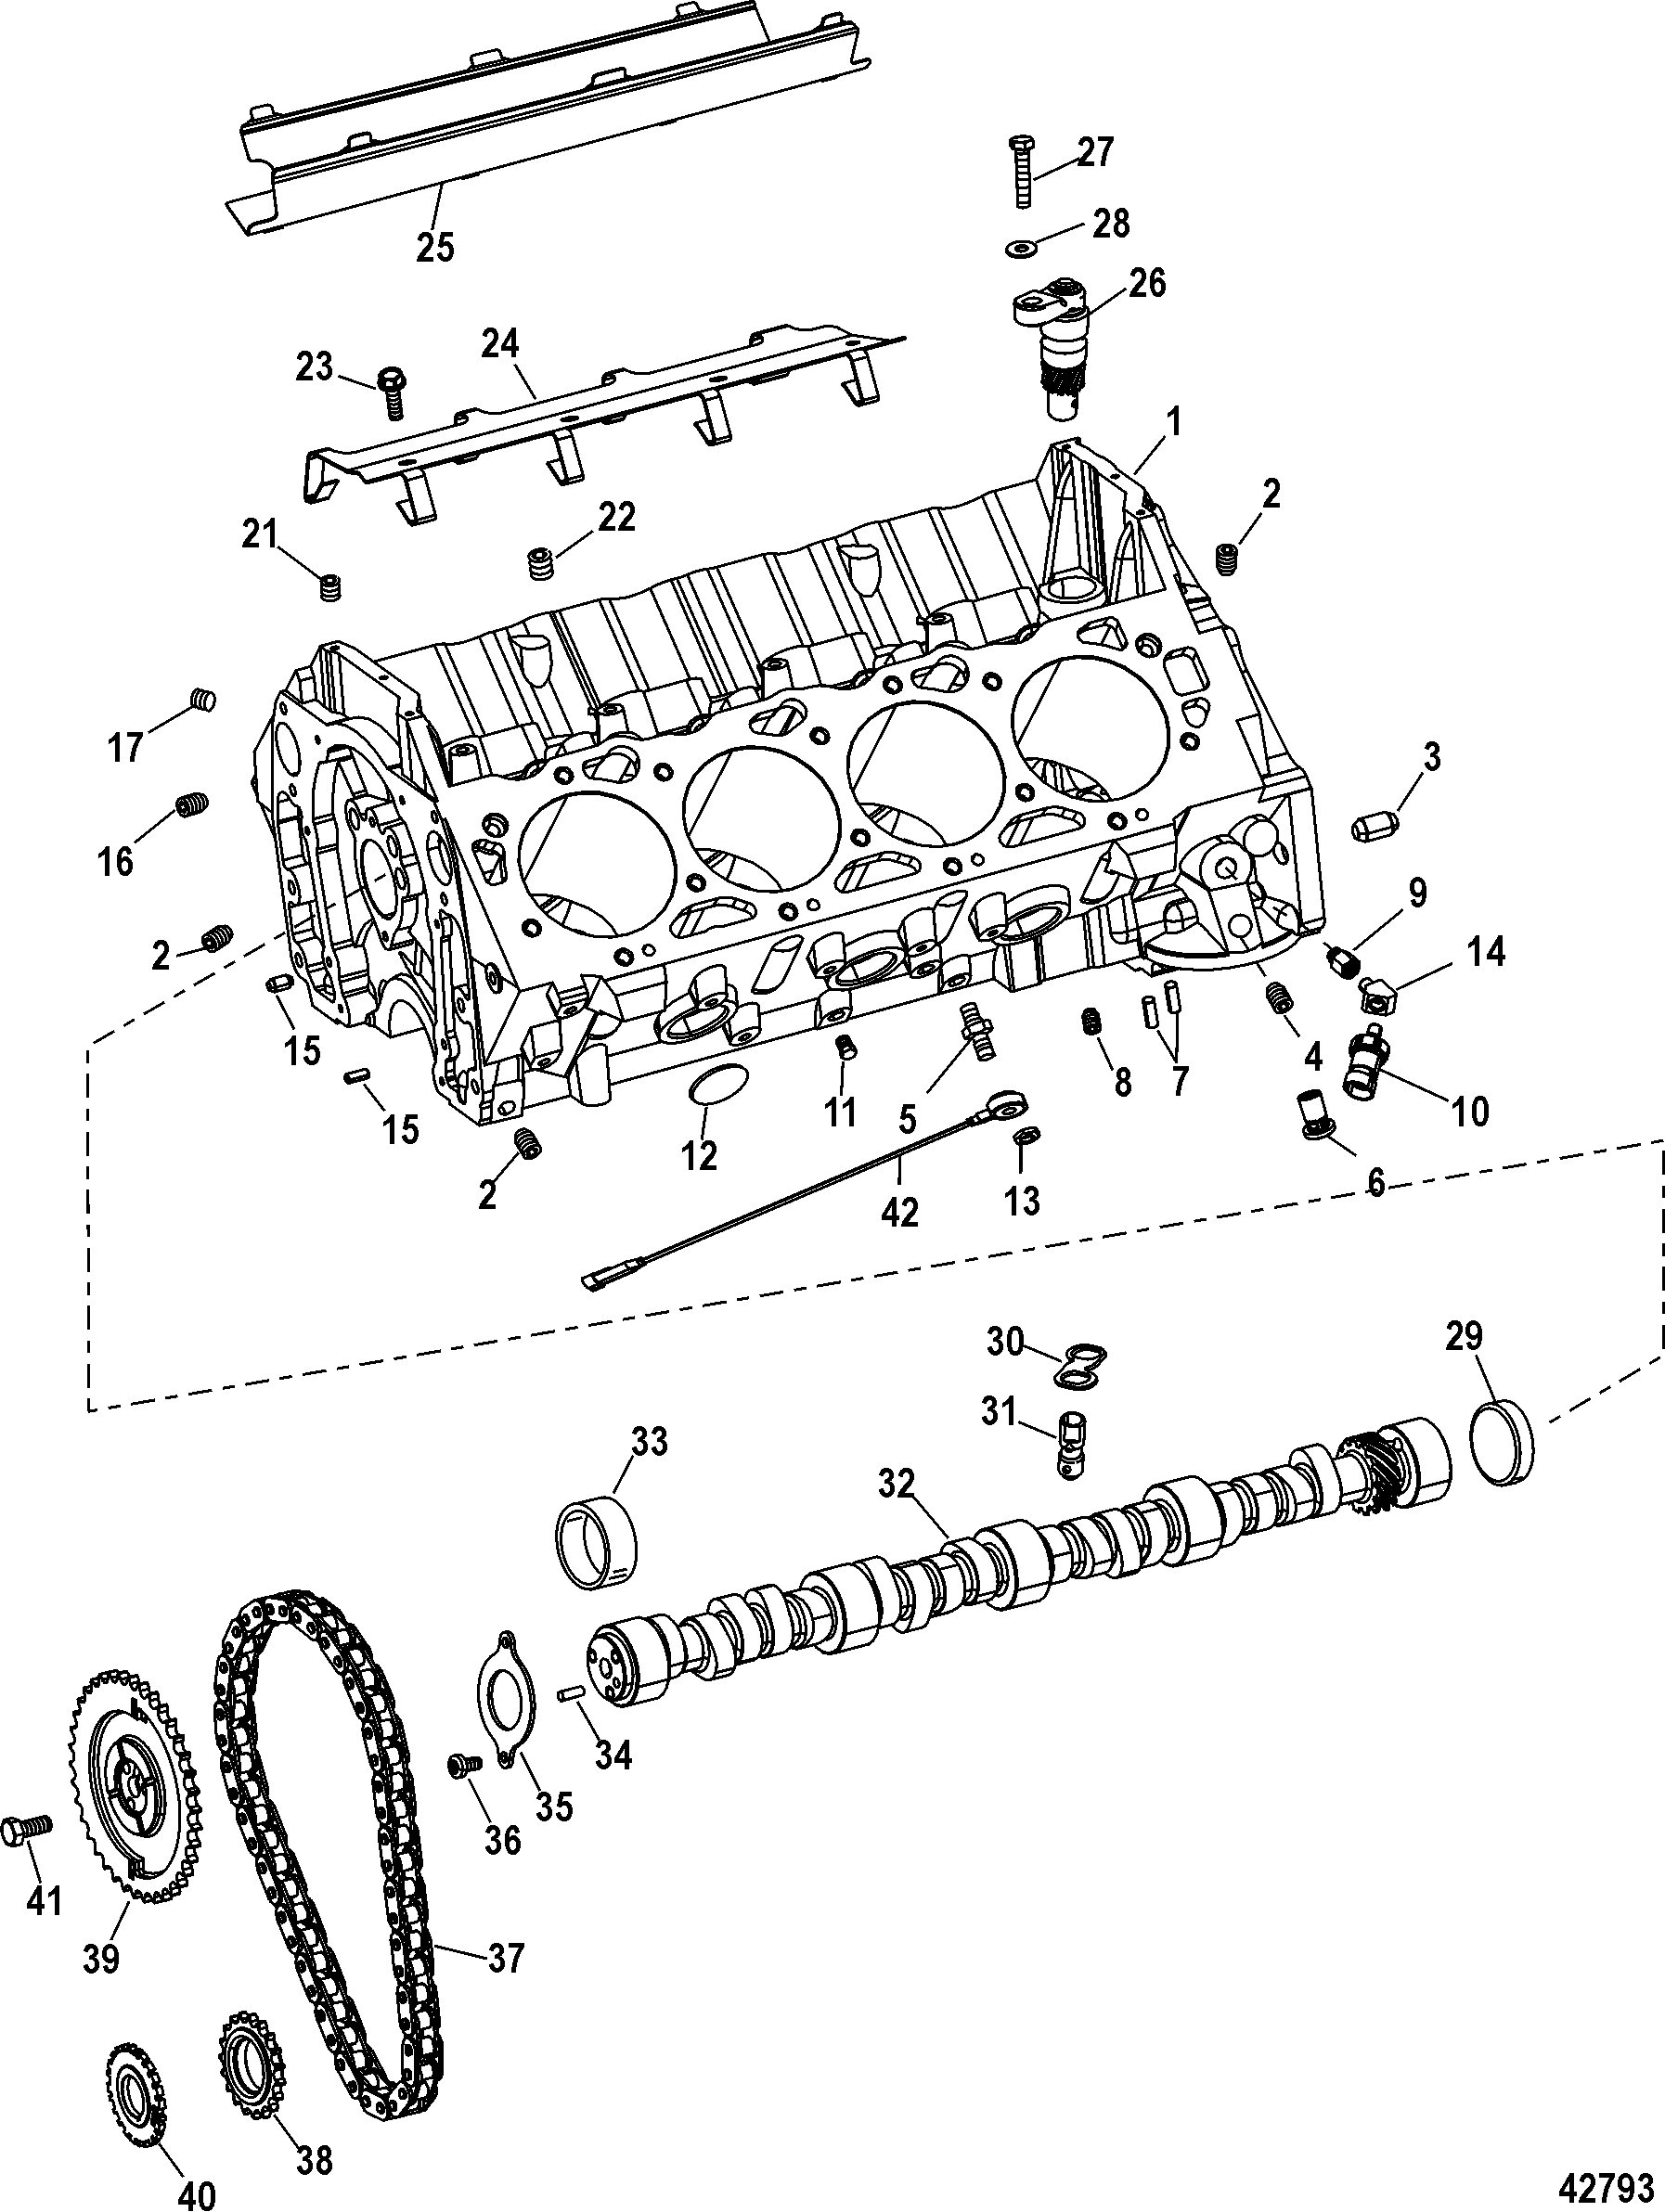 S 8223 cylinder block and camshaft